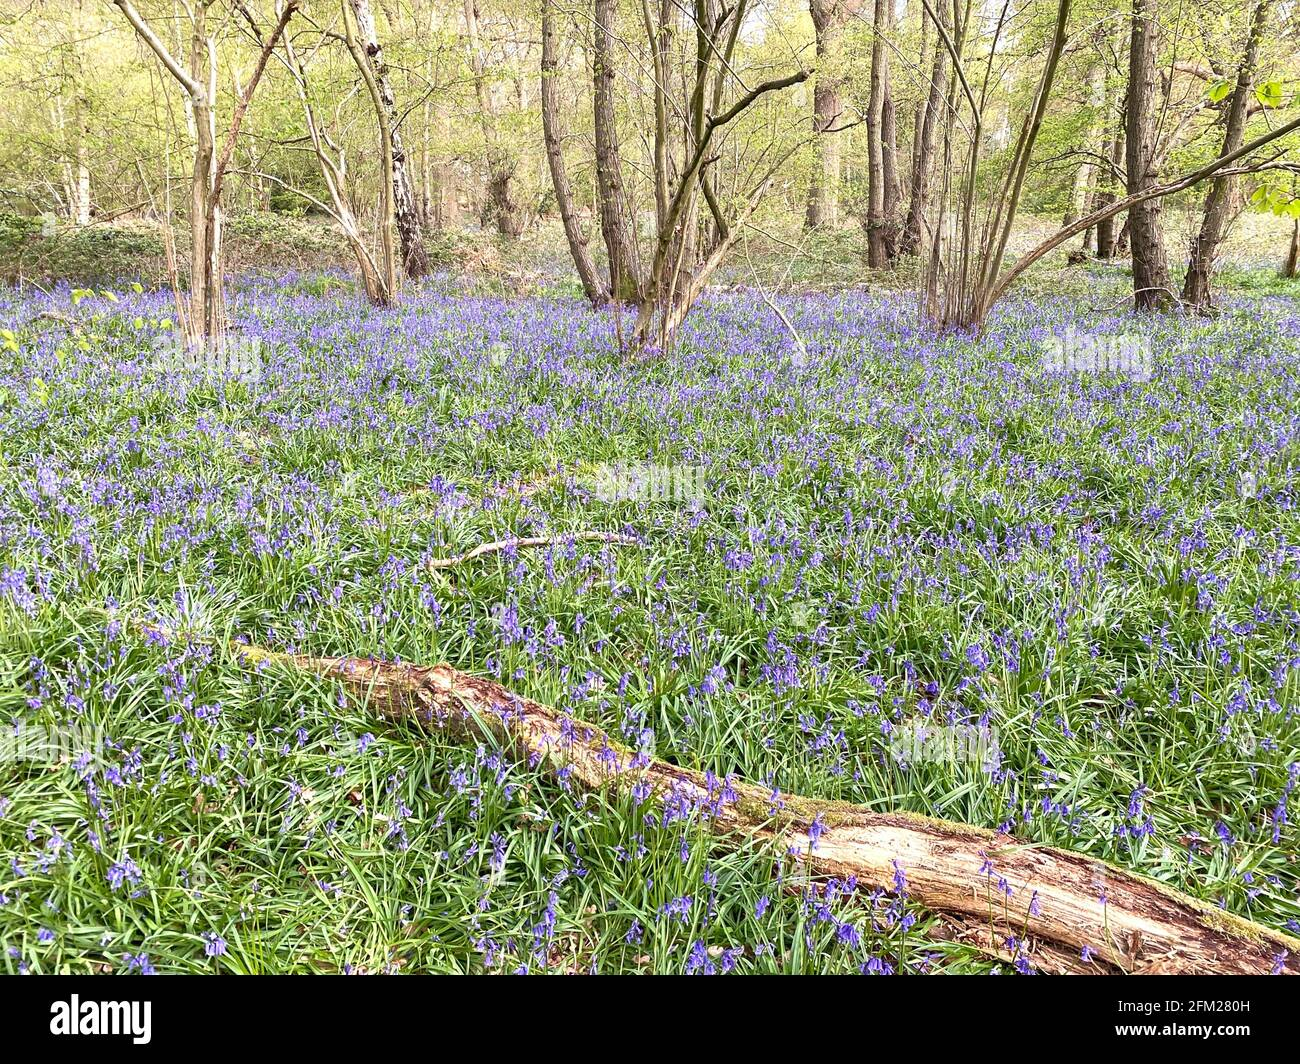 BLUEBELL WOOD à Berkshire, Angleterre, début mai. Photo : Tony Gale Banque D'Images